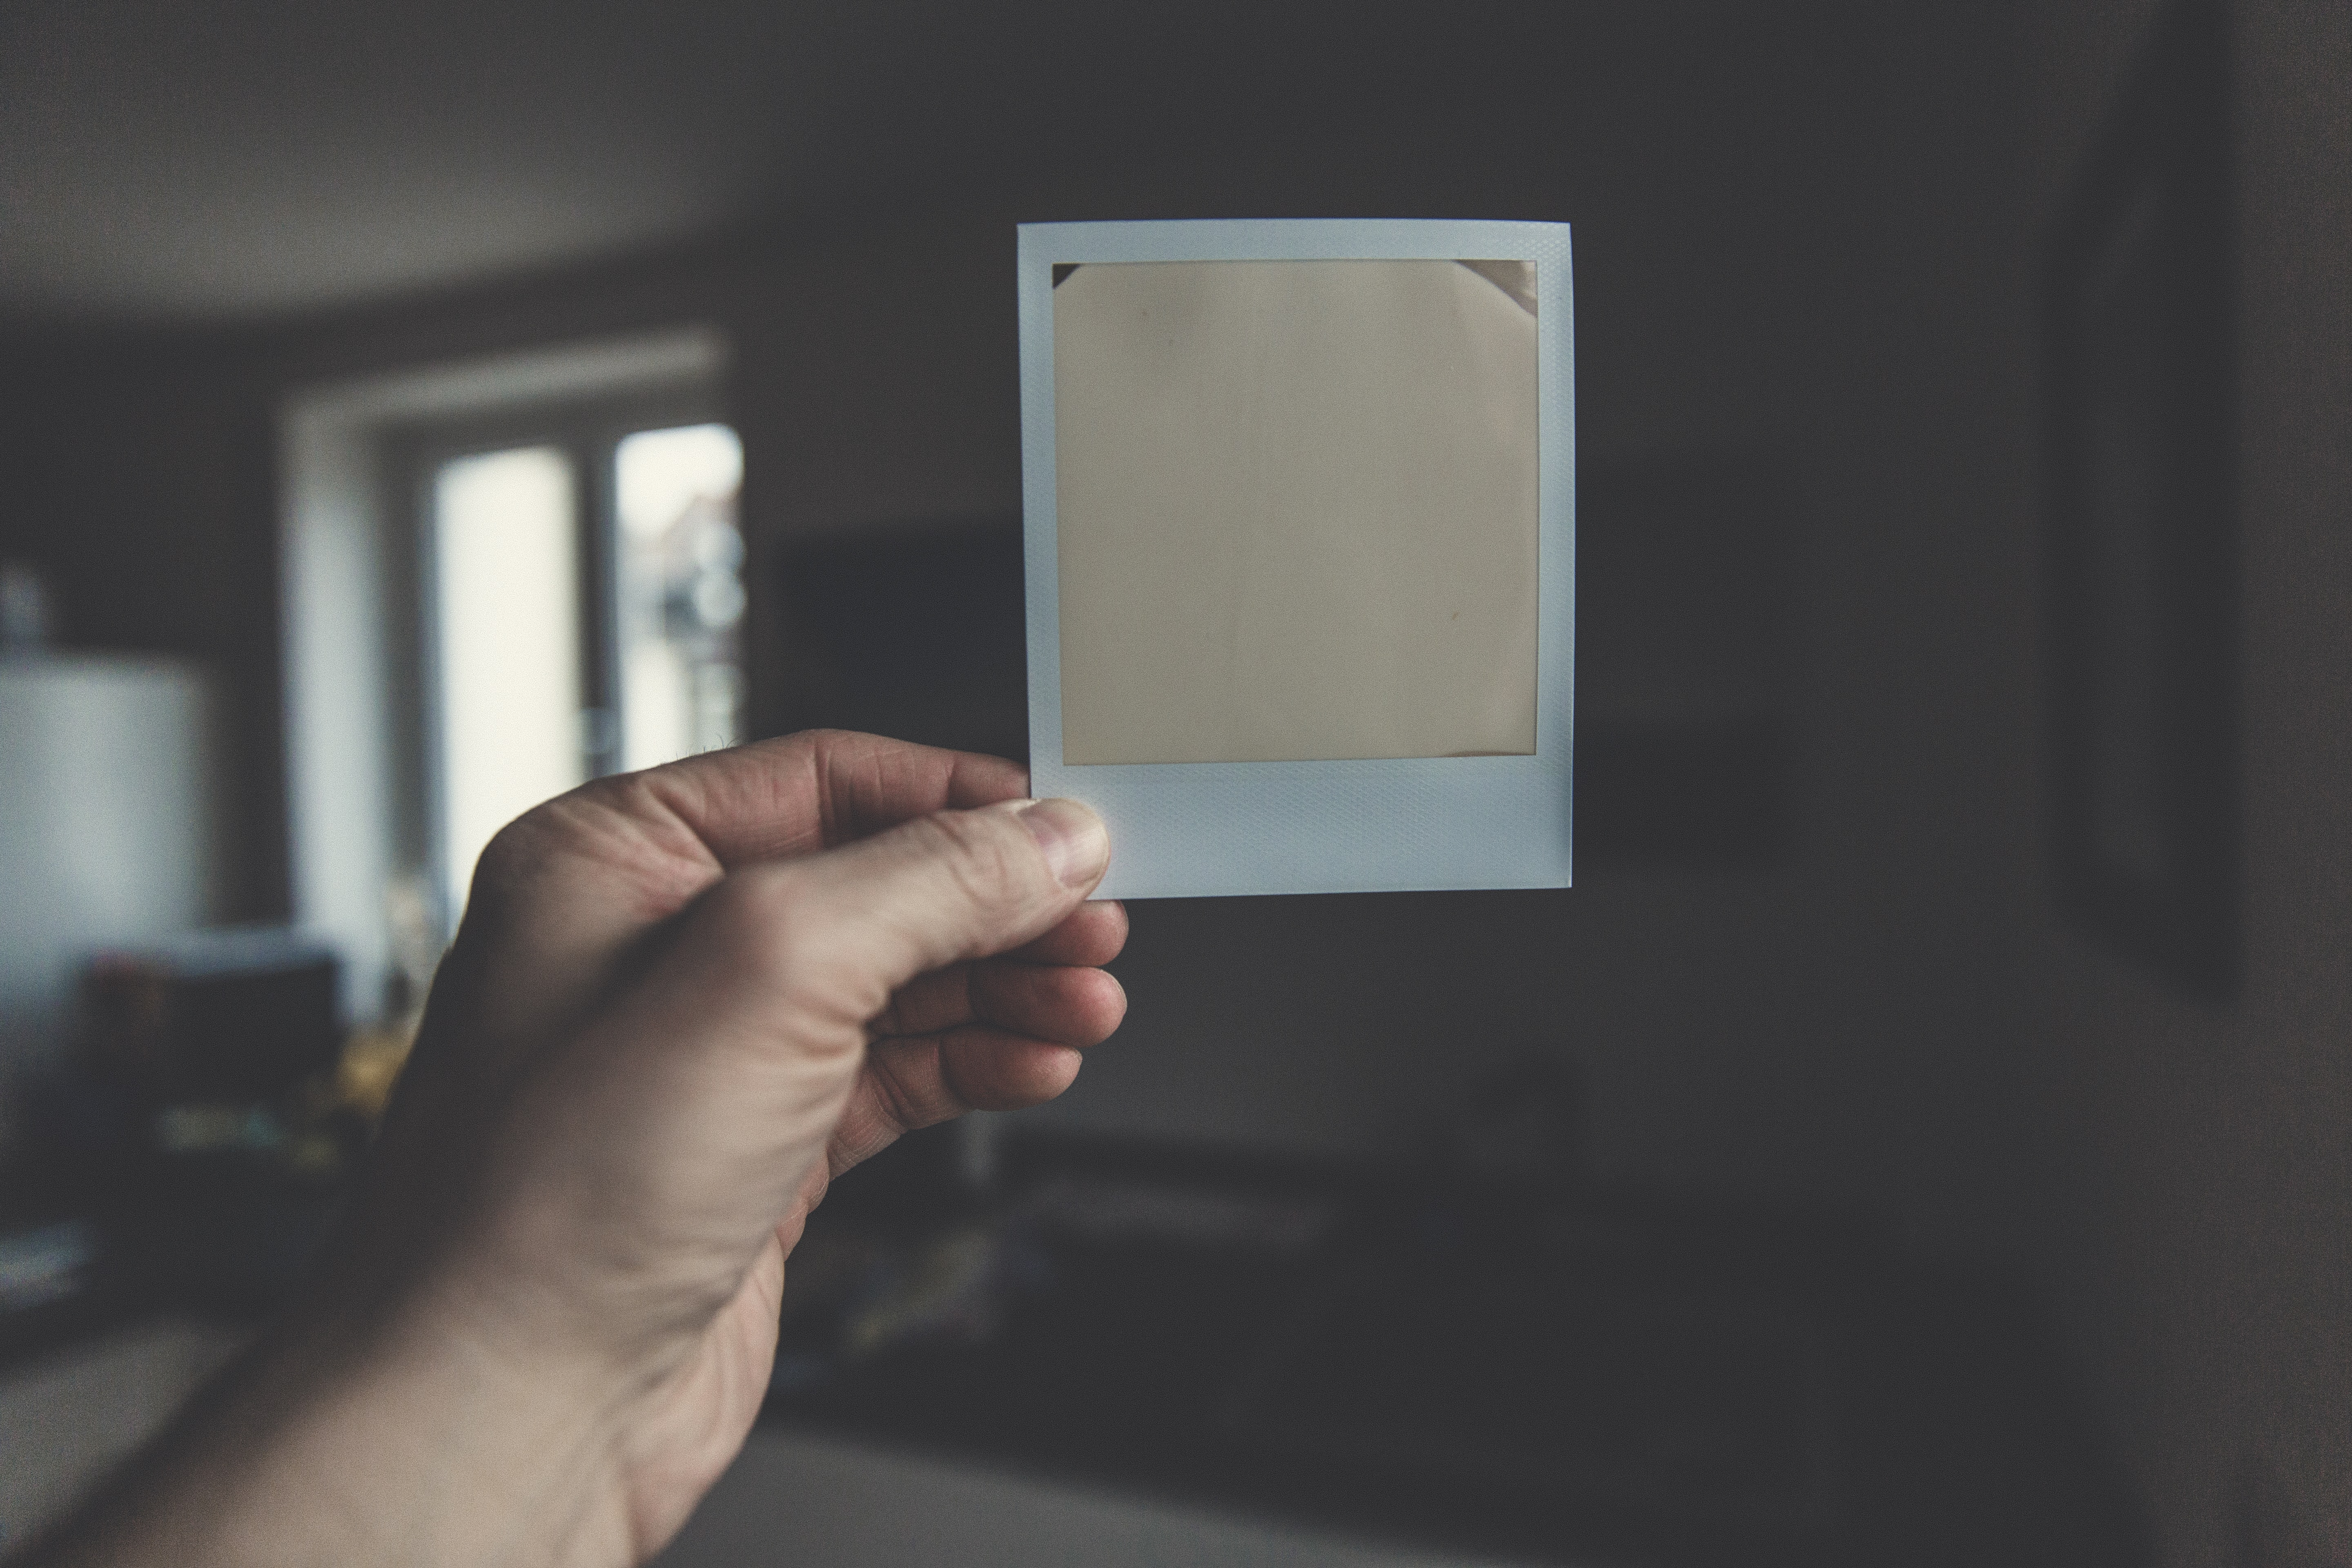 A person holding an exposed piece of Polaroid film in their hand